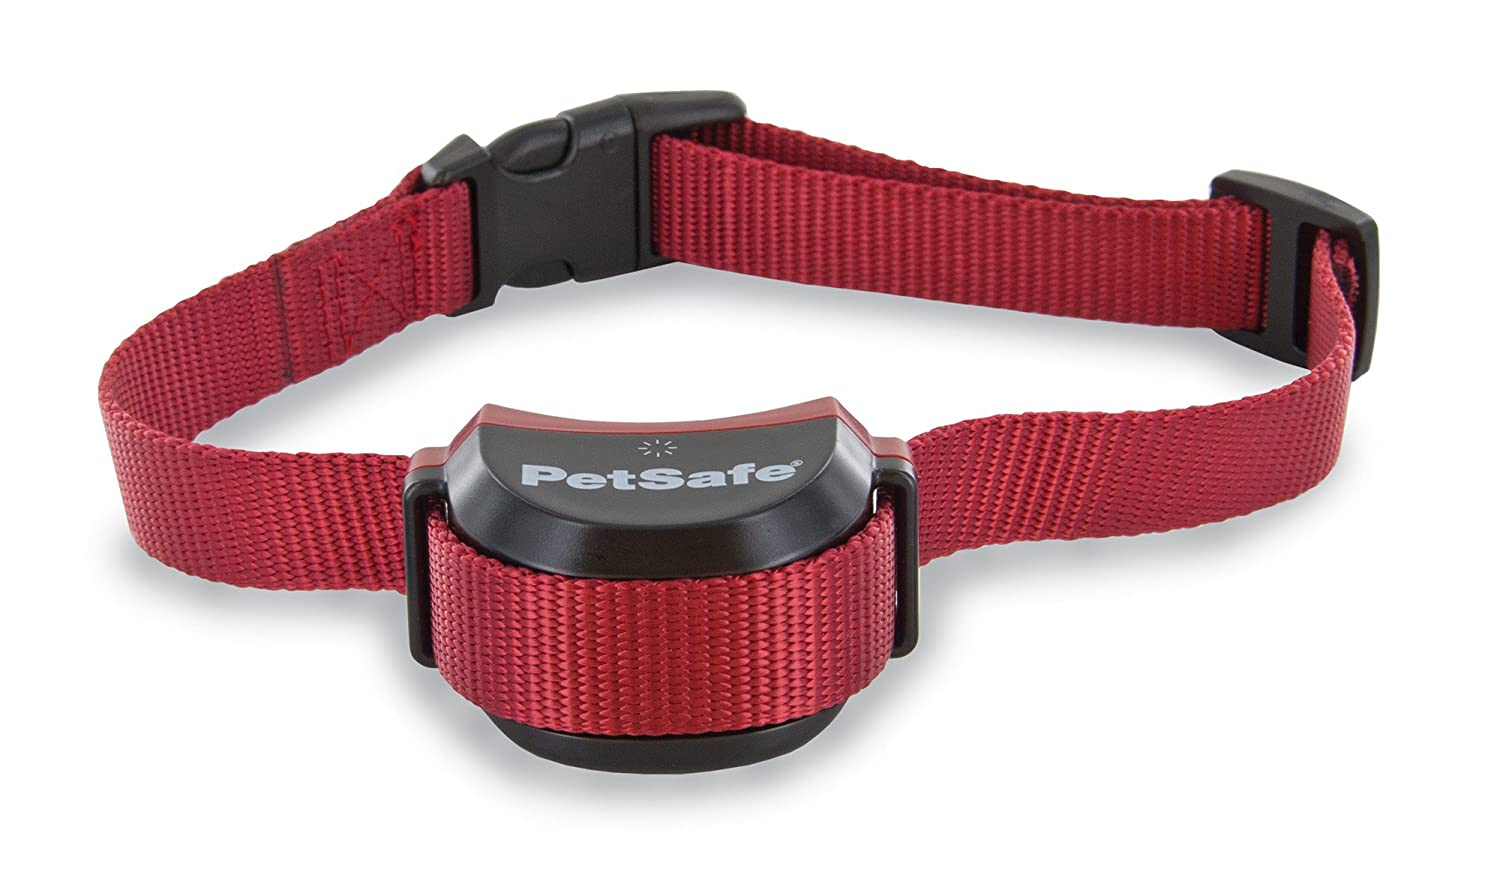 PetSafe Replacement Collar for Stubborn Dog Stay+Play Wireless Fence Rechargeable System